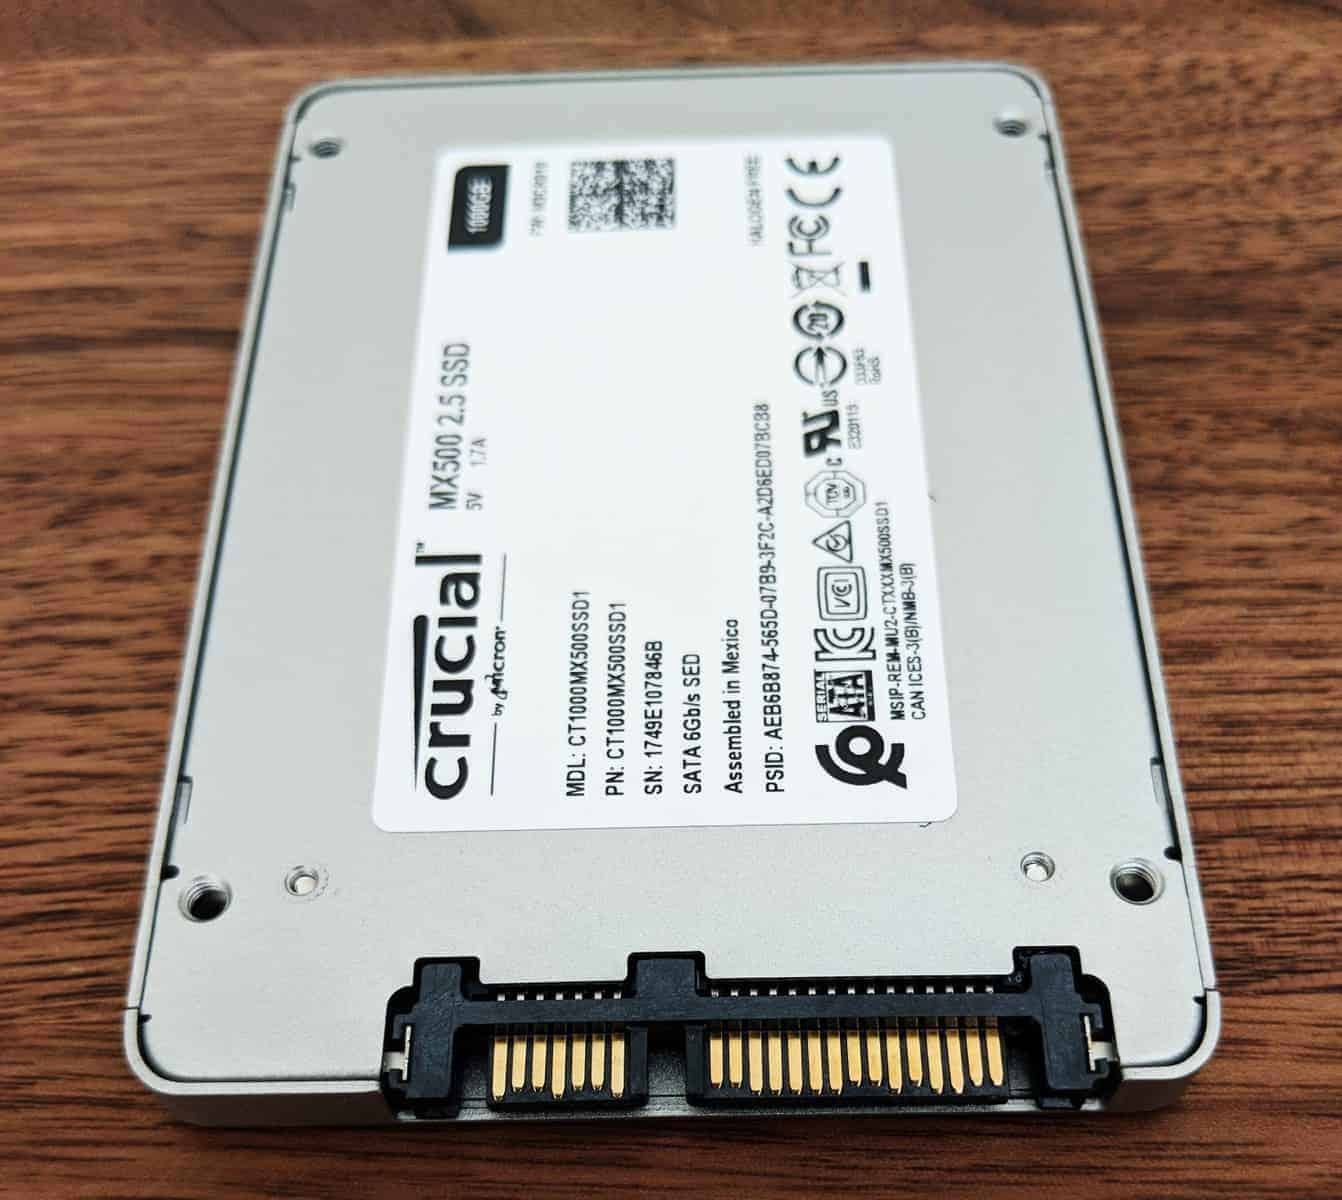 Crucial-MX500-1TB-Photos10 Crucial MX500 1TB SSD Review